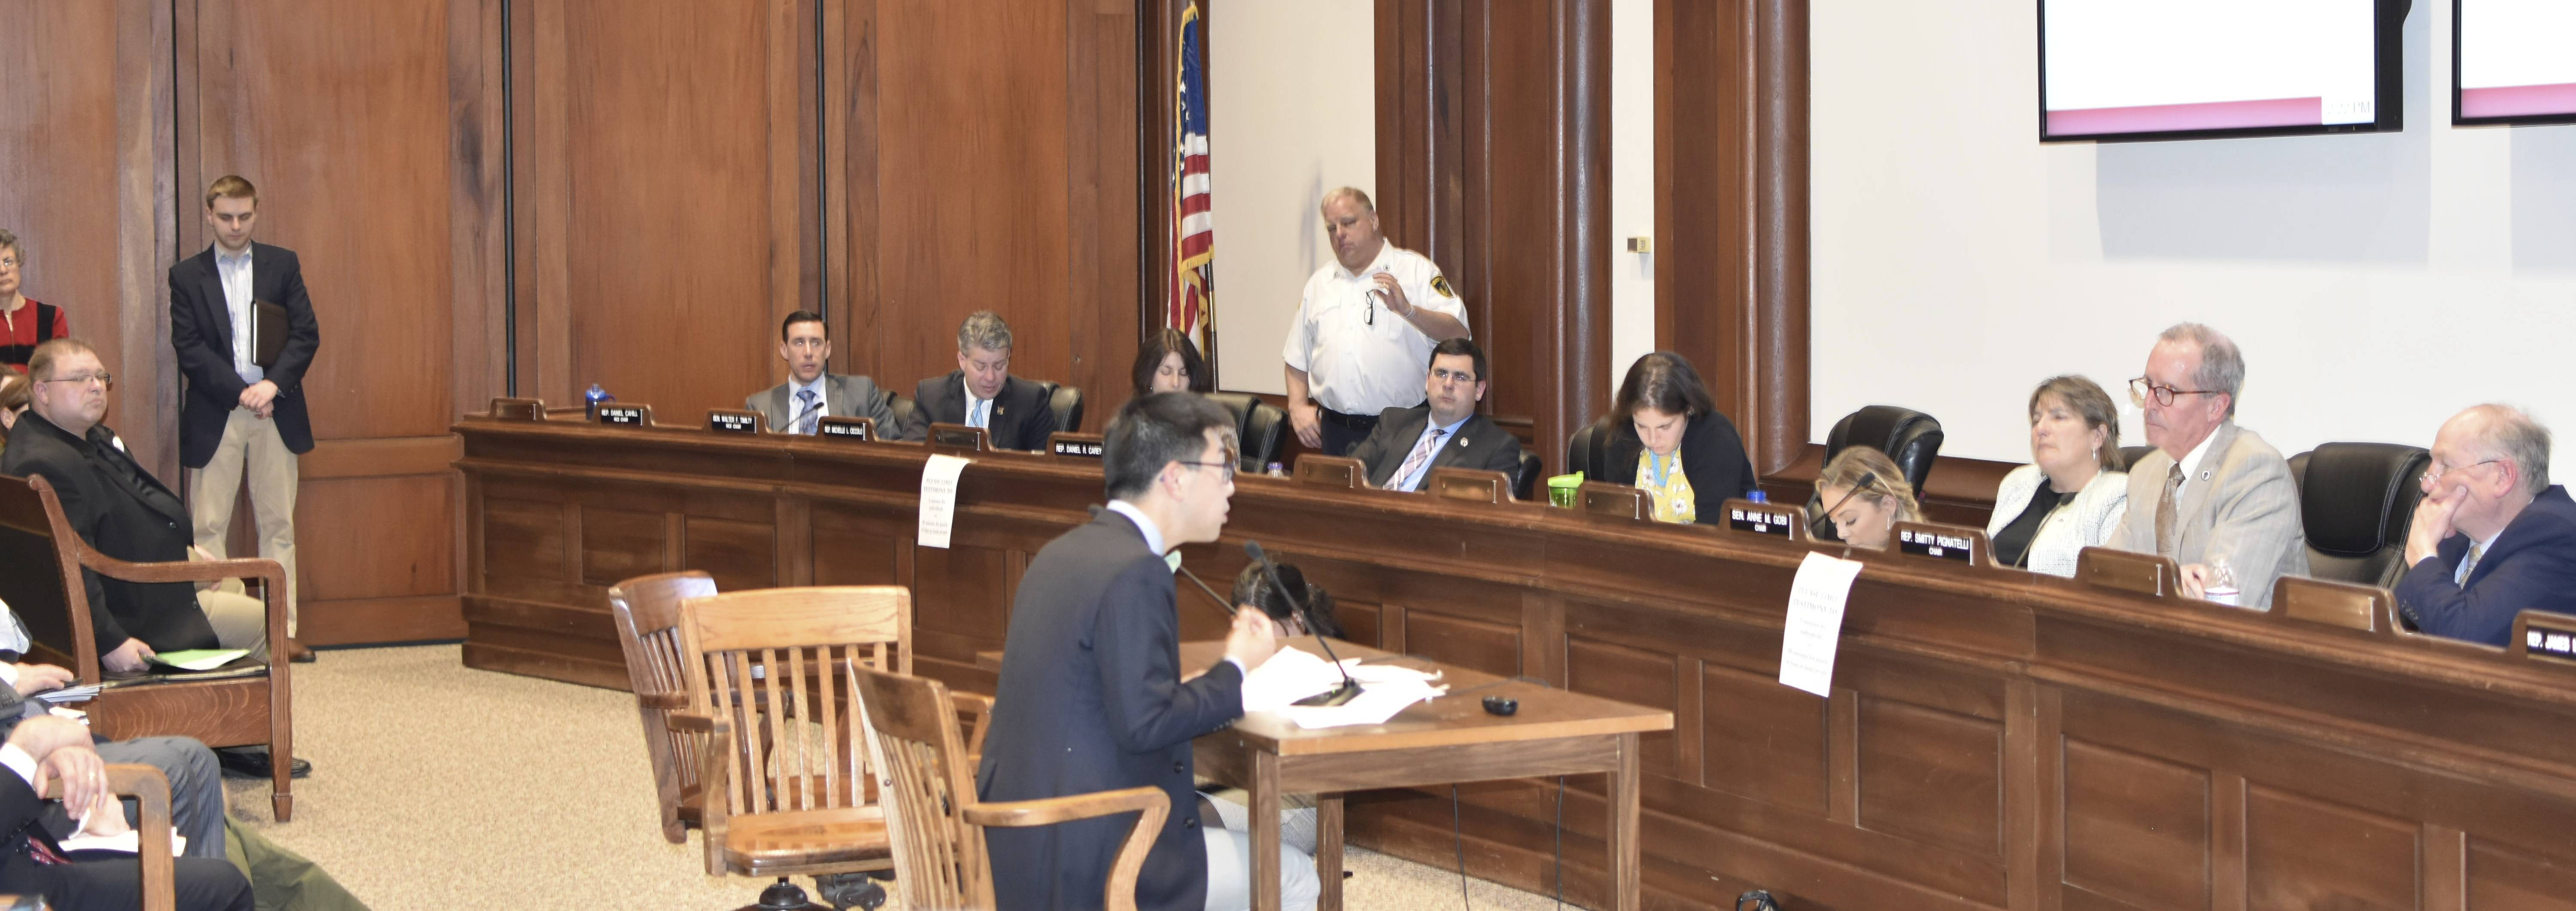 Surfrider Testimony on MA Plastic Bag Bill